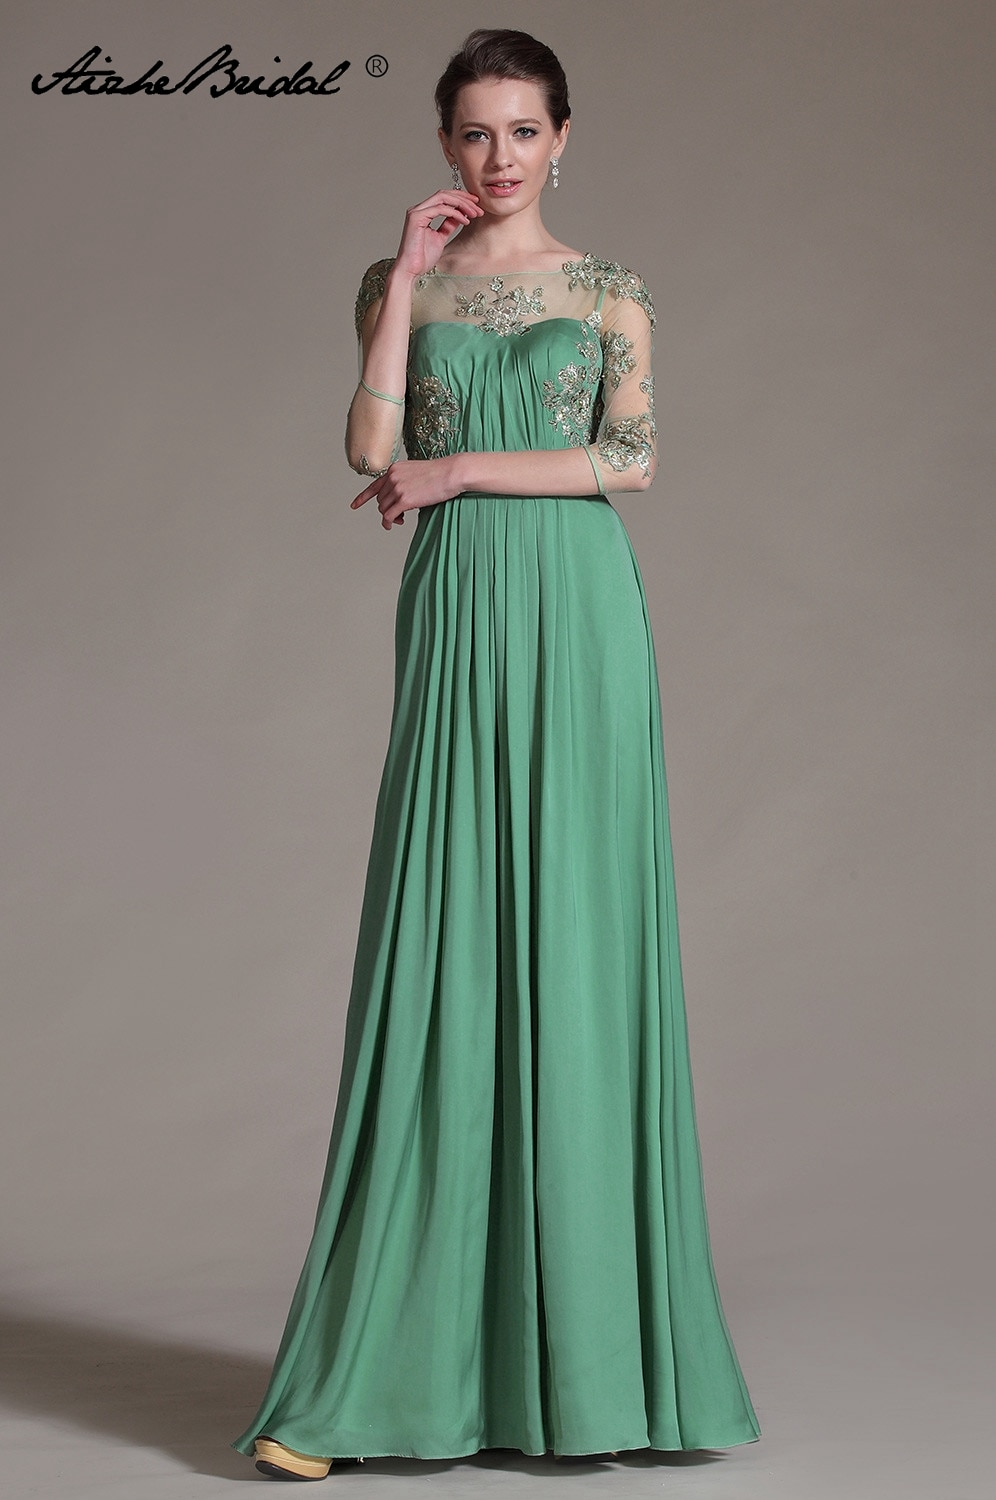 plus size green 2018 mother of the bride dresses a line 3 4 sleeves chiffon lace wedding party dress mother dresses for wedding Plus Size Green 2018 Mother Of The Bride Dresses A-line 3/4 Sleeves Chiffon Lace Wedding Party Dress Mother Dresses For Wedding